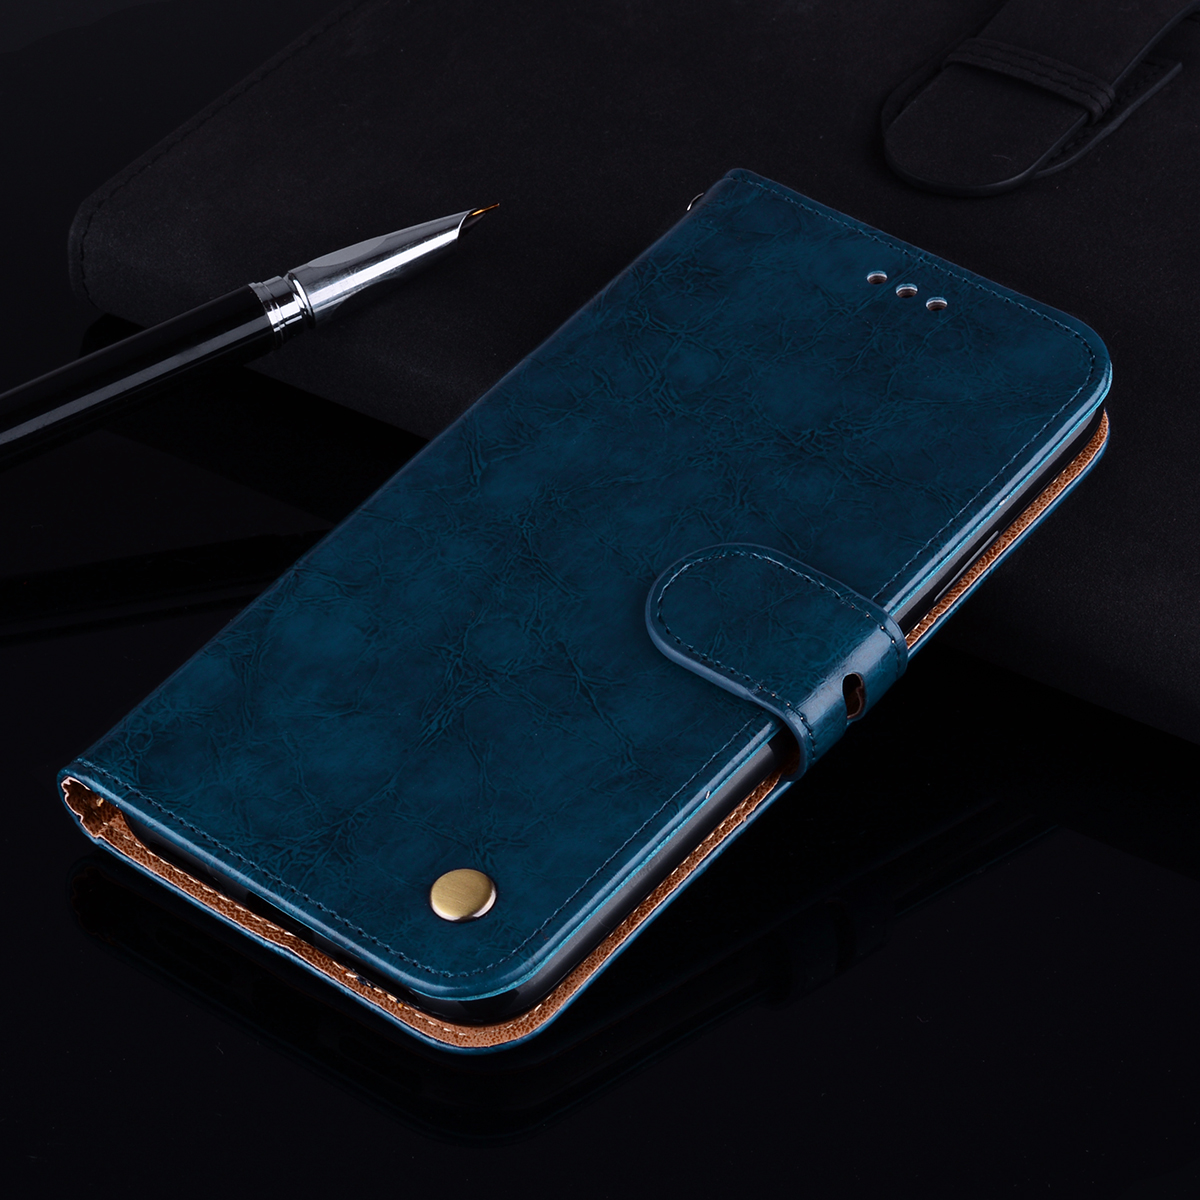 Leather Wallet Case For <font><b>Huawei</b></font> P8 Lite ALE-L21 P9 Lite VNS-L21 VNS-L31 2017 <font><b>PRA</b></font>-<font><b>LX1</b></font> Mini SLA-L22 Phone Stand Flip Silicone Cover image